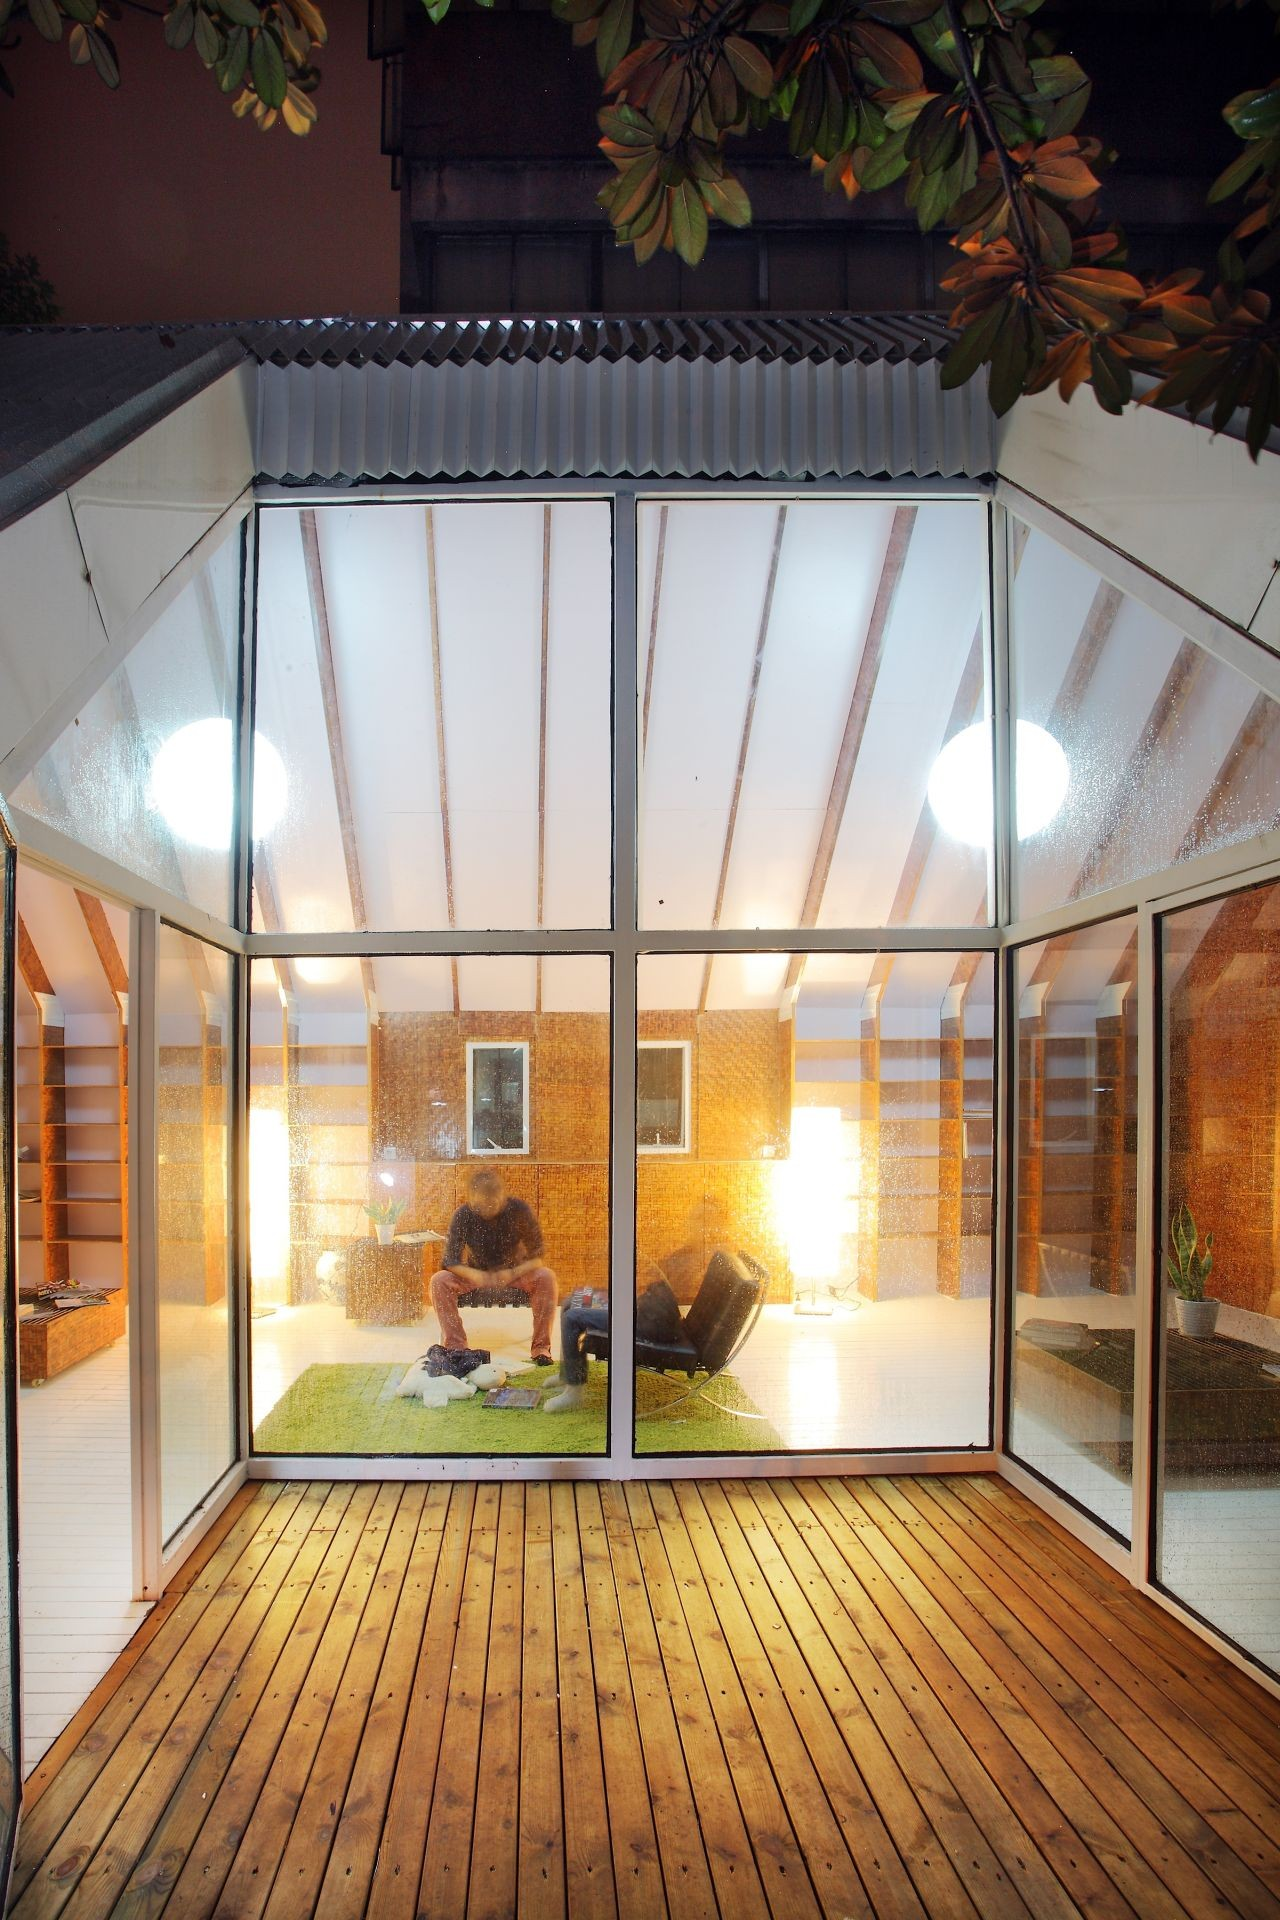 N4+ Gluebam House / Advanced Architecture Lab[AaL]